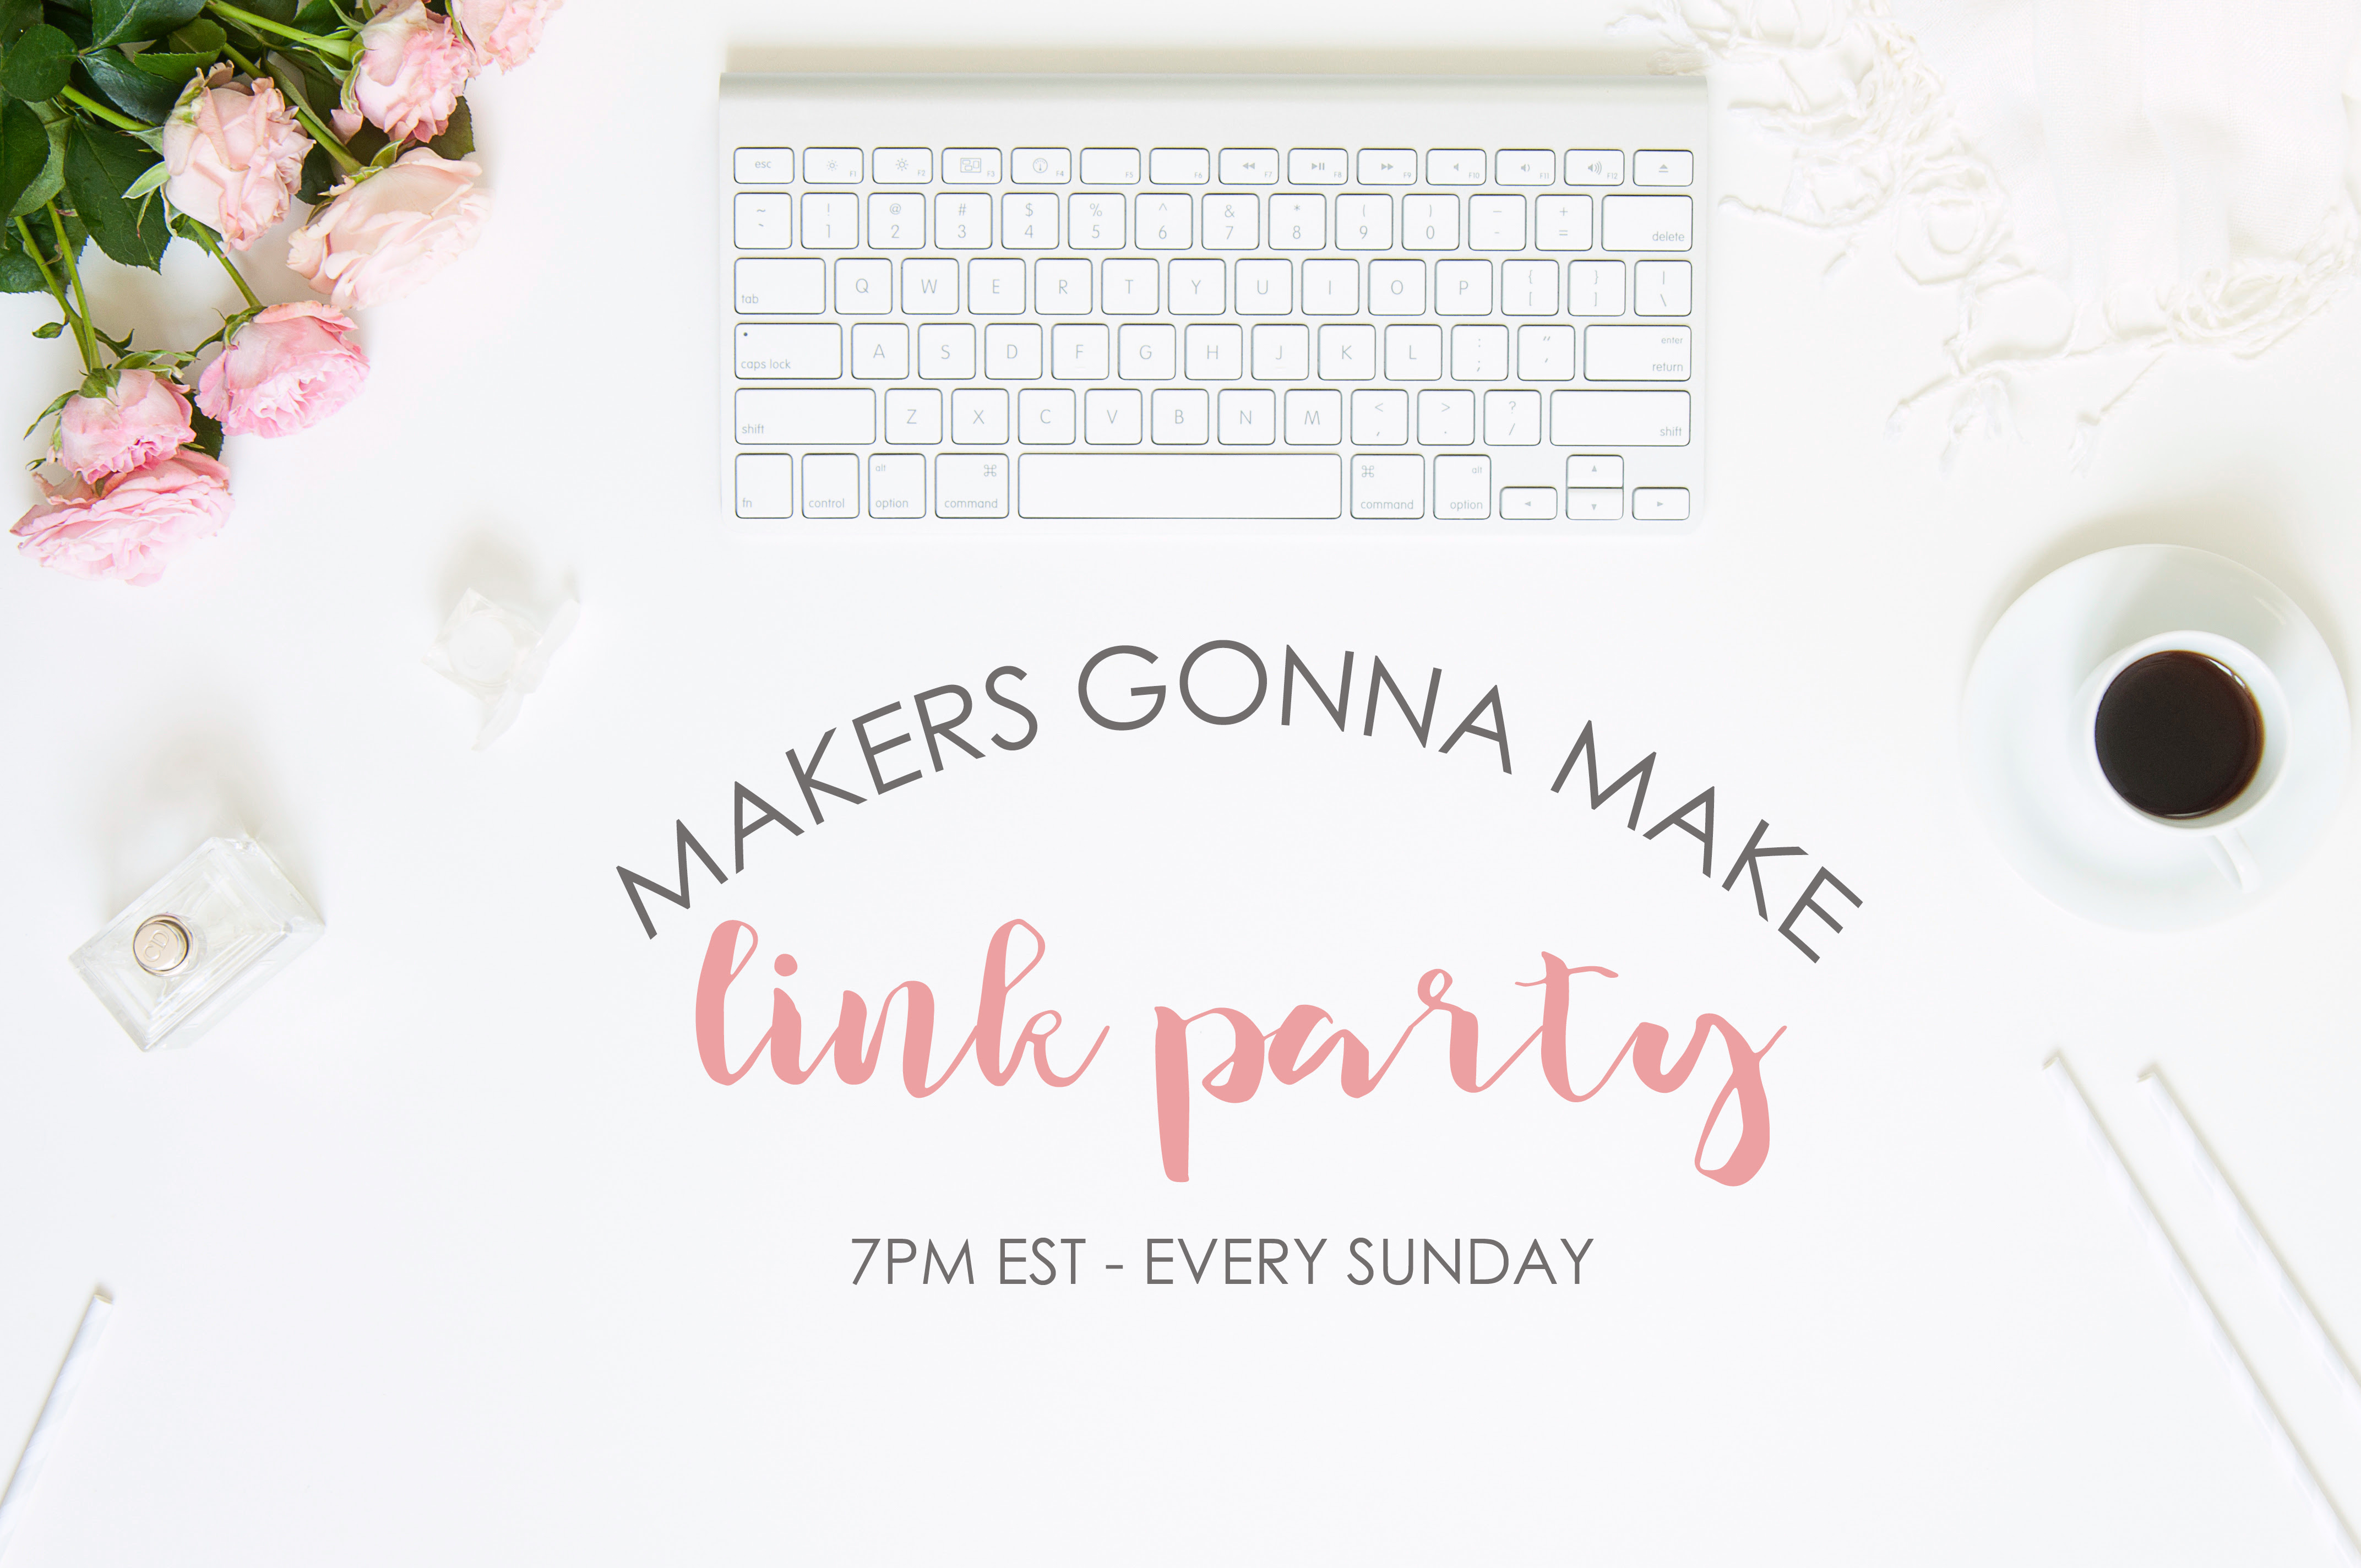 New Link Party! 7pm Sundays!